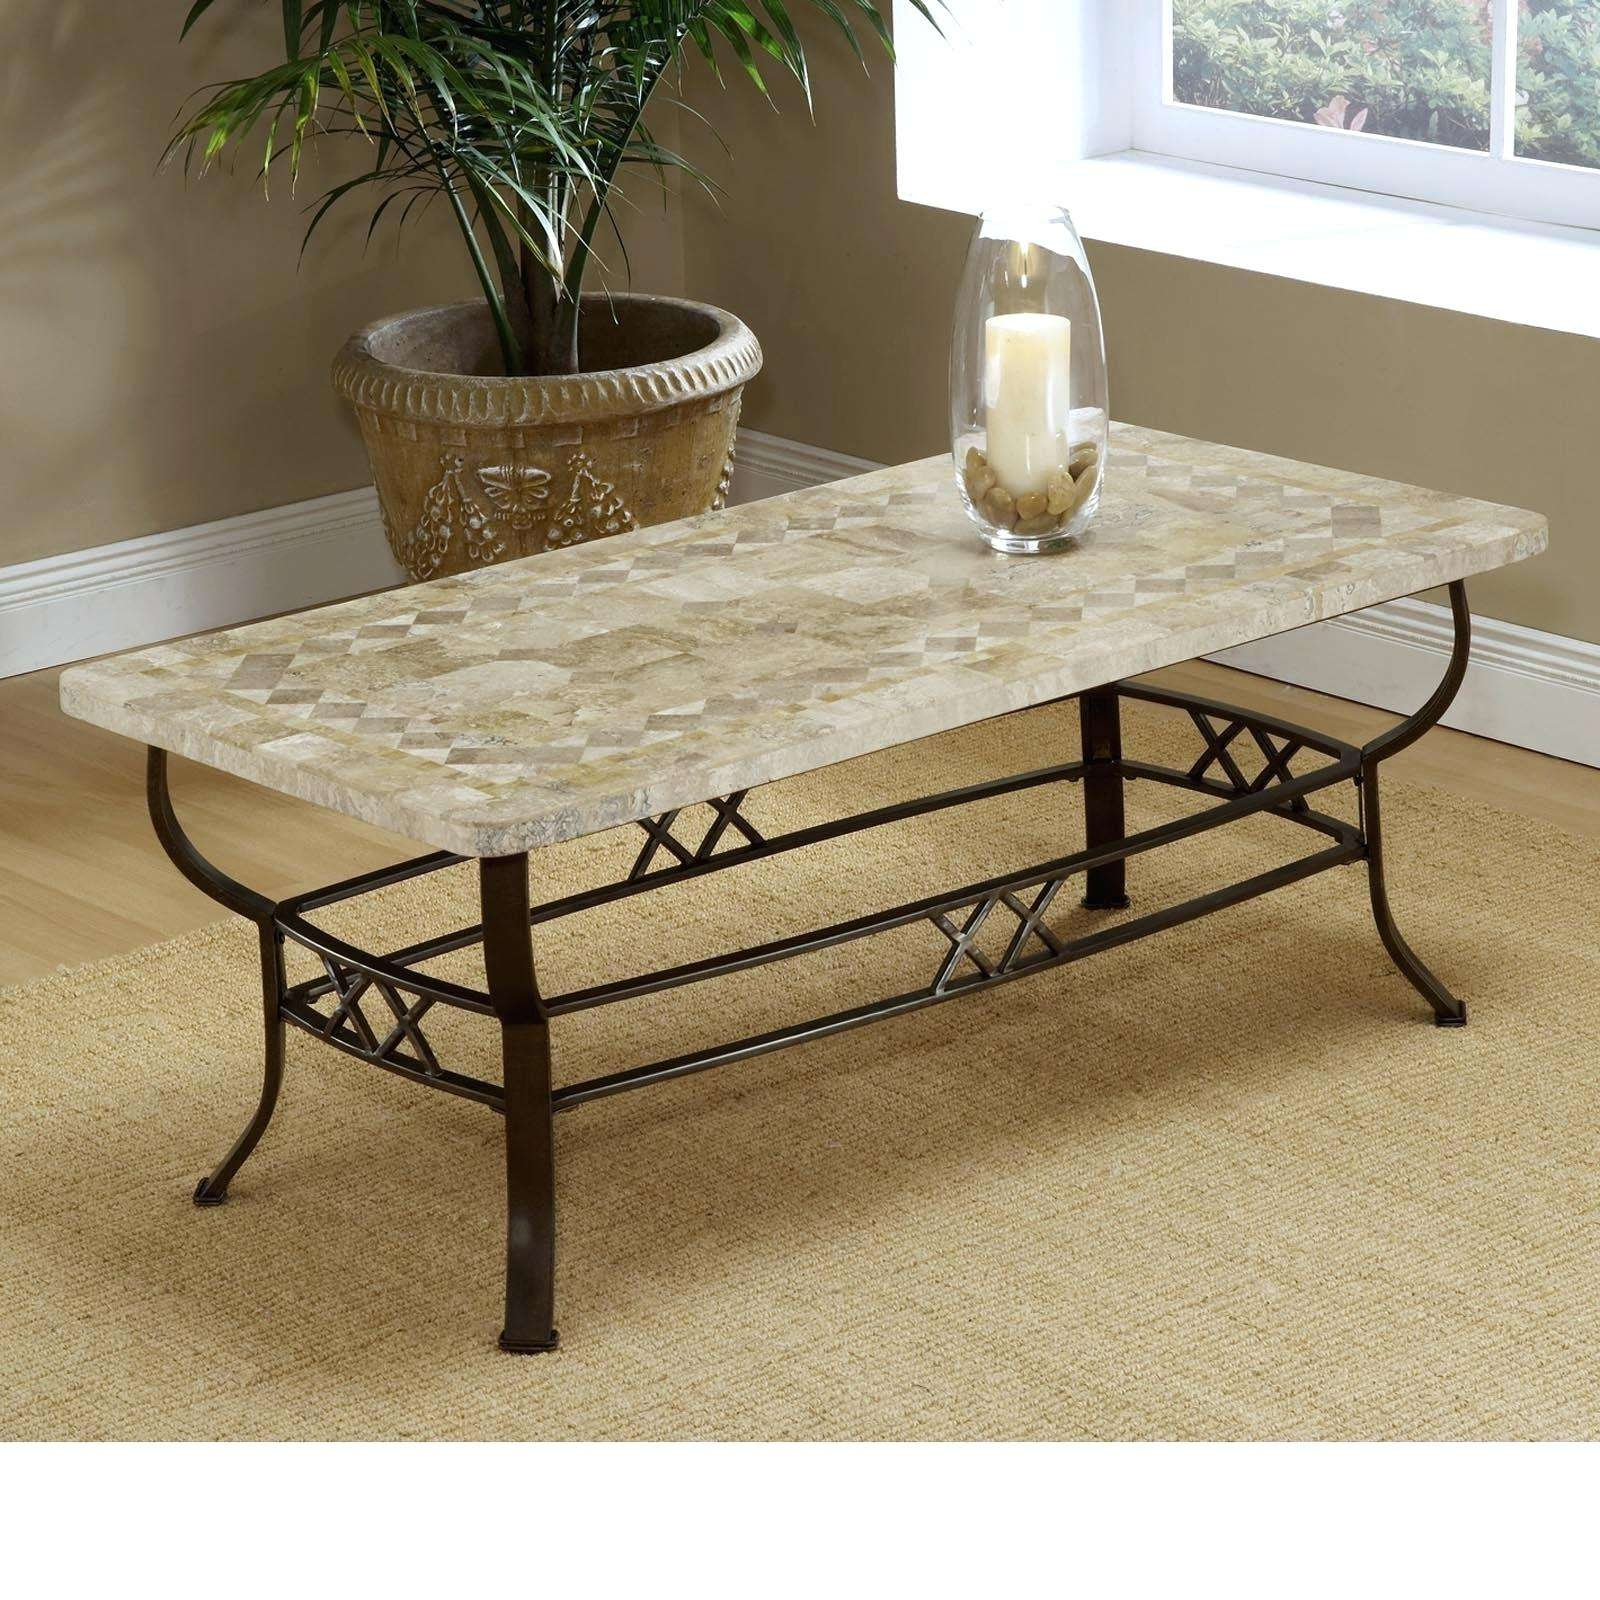 2017 Rounded Corner Coffee Tables For Home ~ Corner Coffee Table Rounded Lift Top Unitcorner With (View 10 of 20)